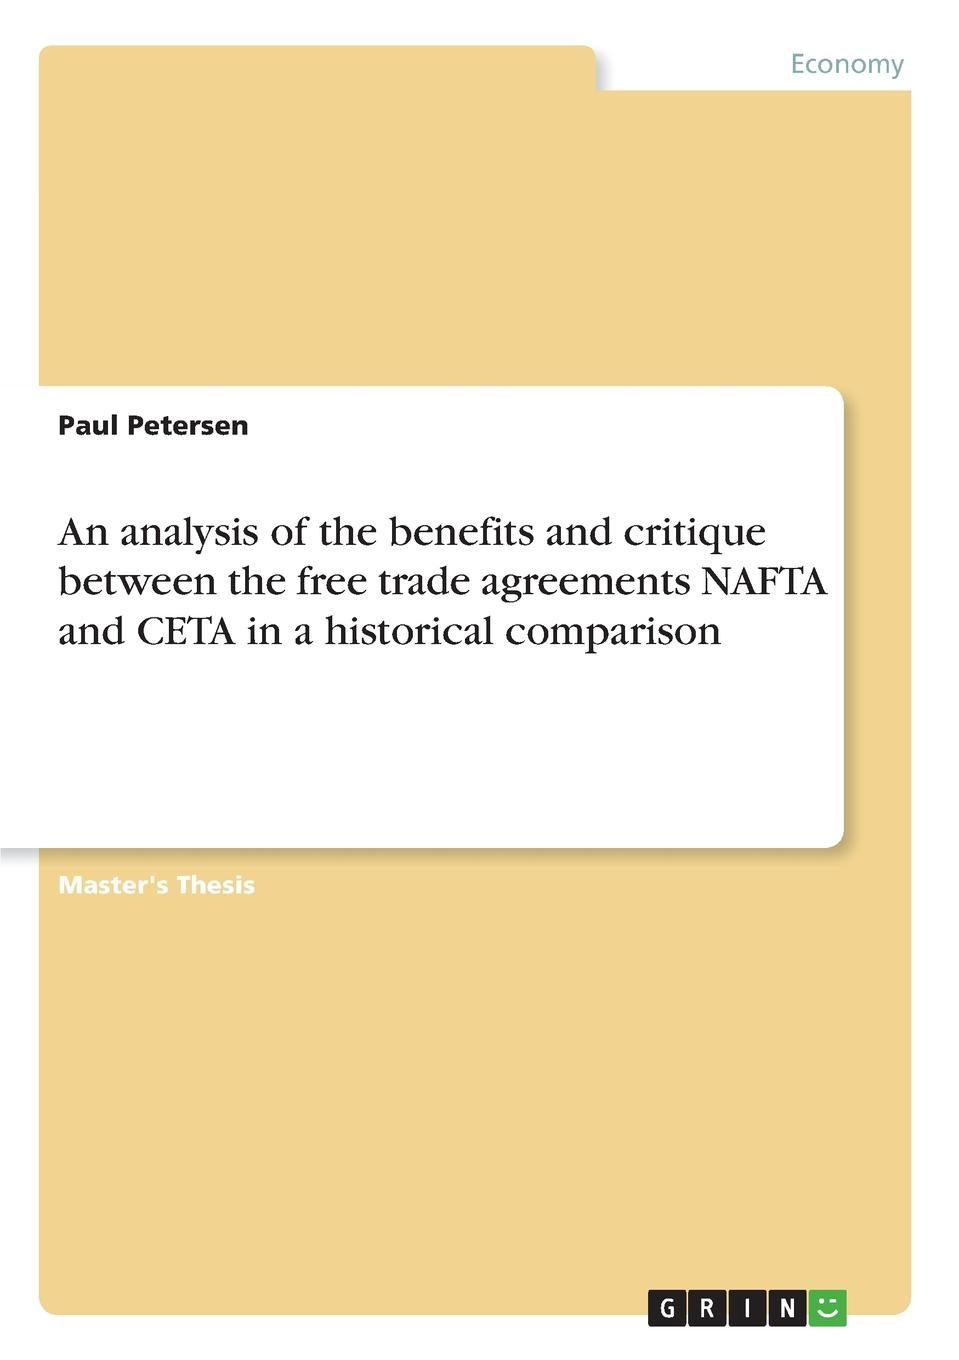 Paul Petersen An analysis of the benefits and critique between the free trade agreements NAFTA and CETA in a historical comparison vishaal kishore ricardo s gauntlet economic fiction and the flawed case for free trade